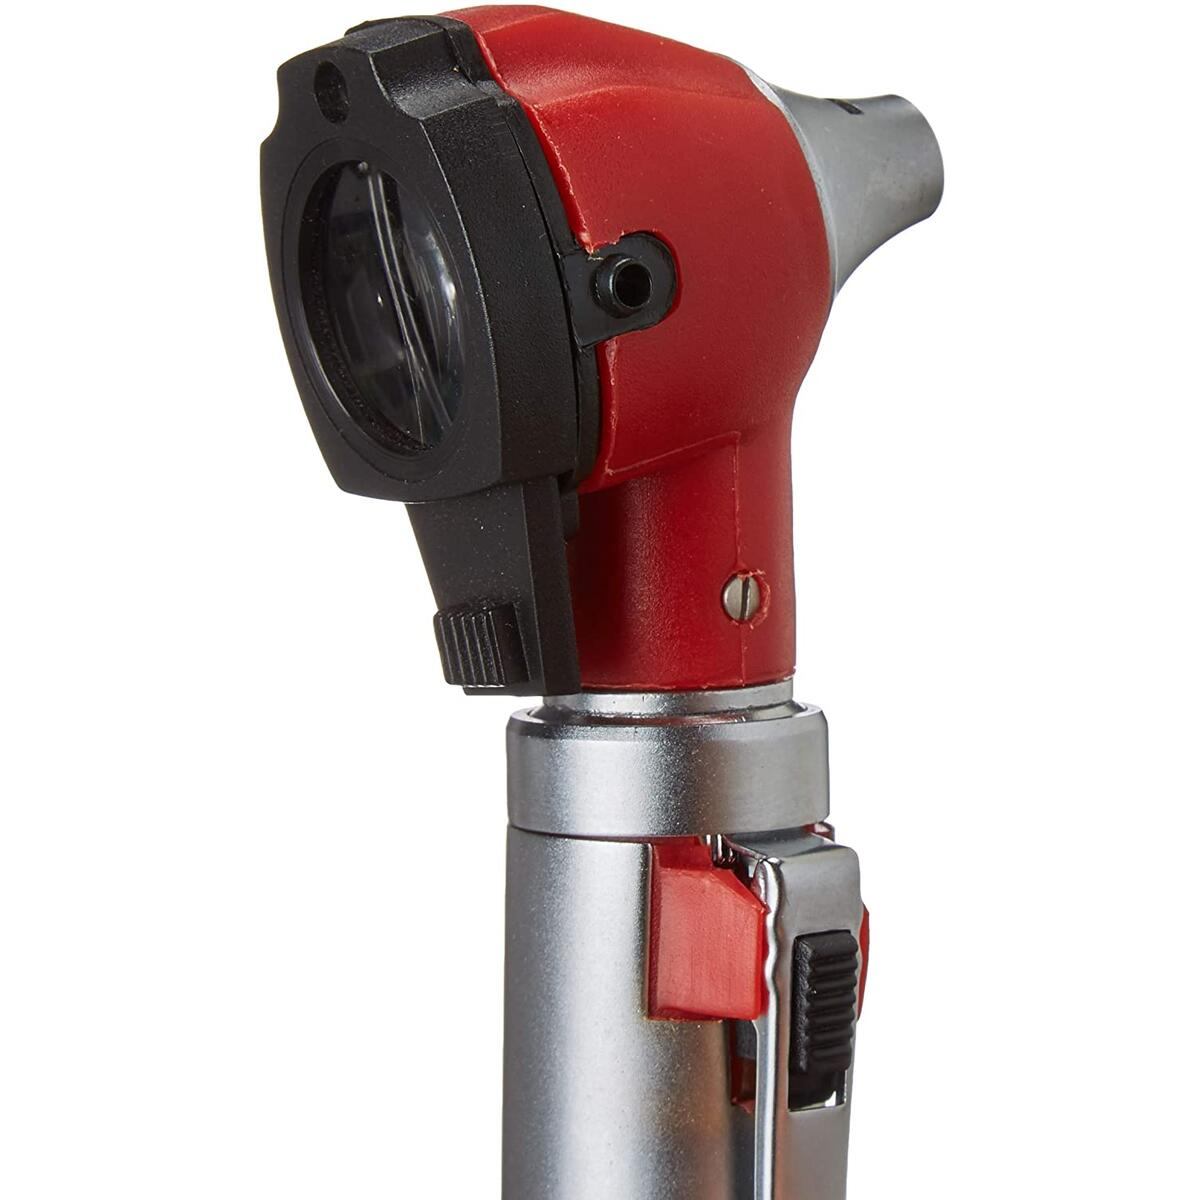 ZetaLife Otoscope - Ear Scope with Light, Ear Infection Detector, (RED) (COVID Protection)